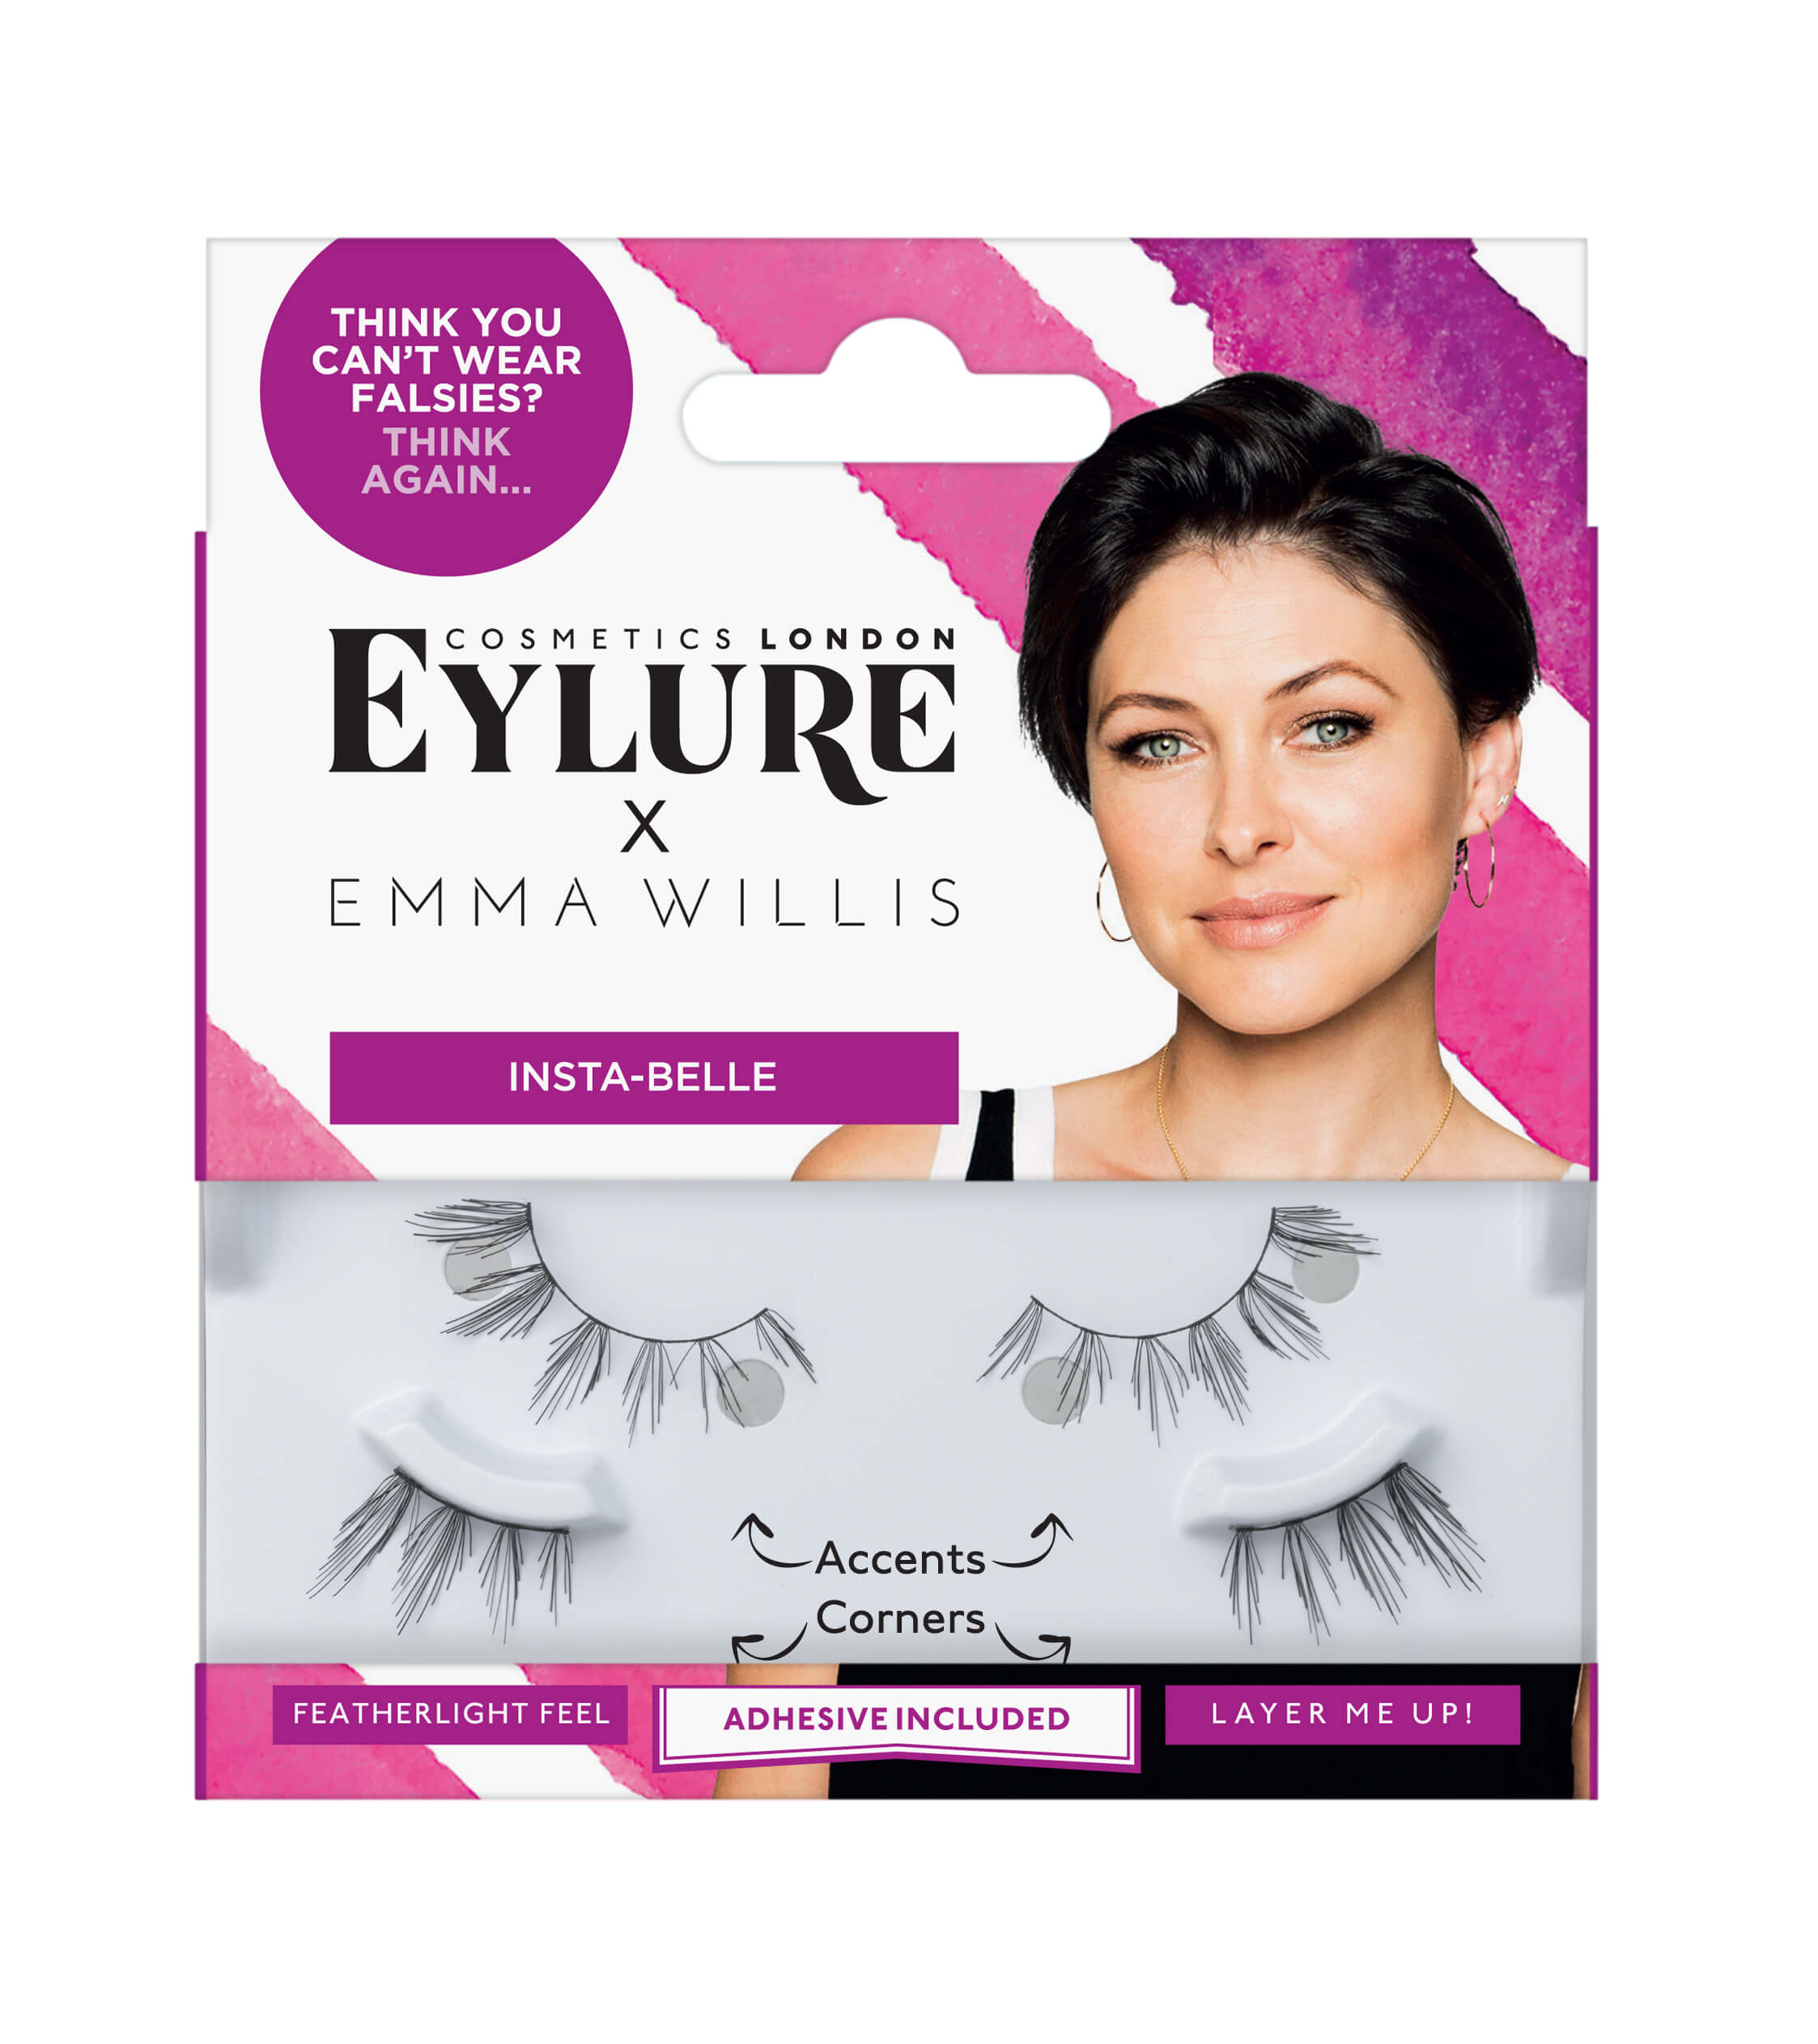 Eylure x Emma Willis - Insta-belle Lashes